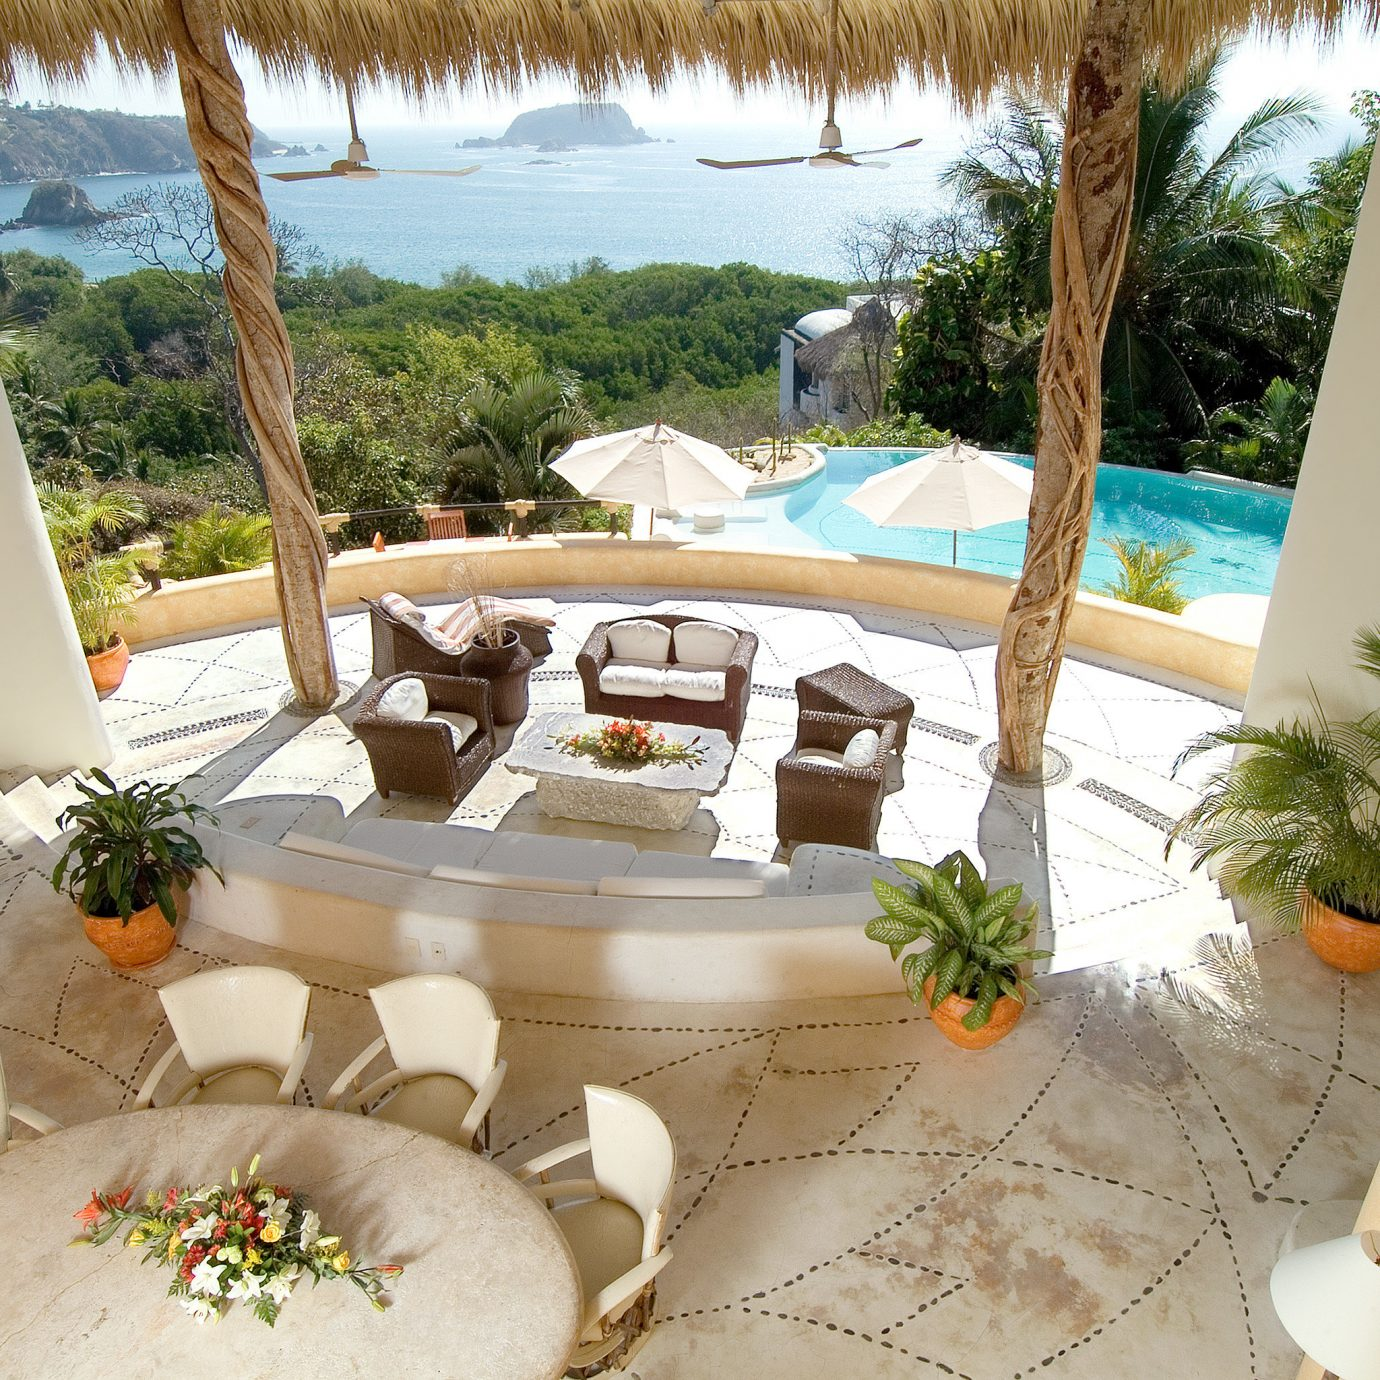 Boutique Lobby Pool Rustic Scenic views Waterfront tree property Villa backyard home Resort swimming pool hacienda mansion dining table